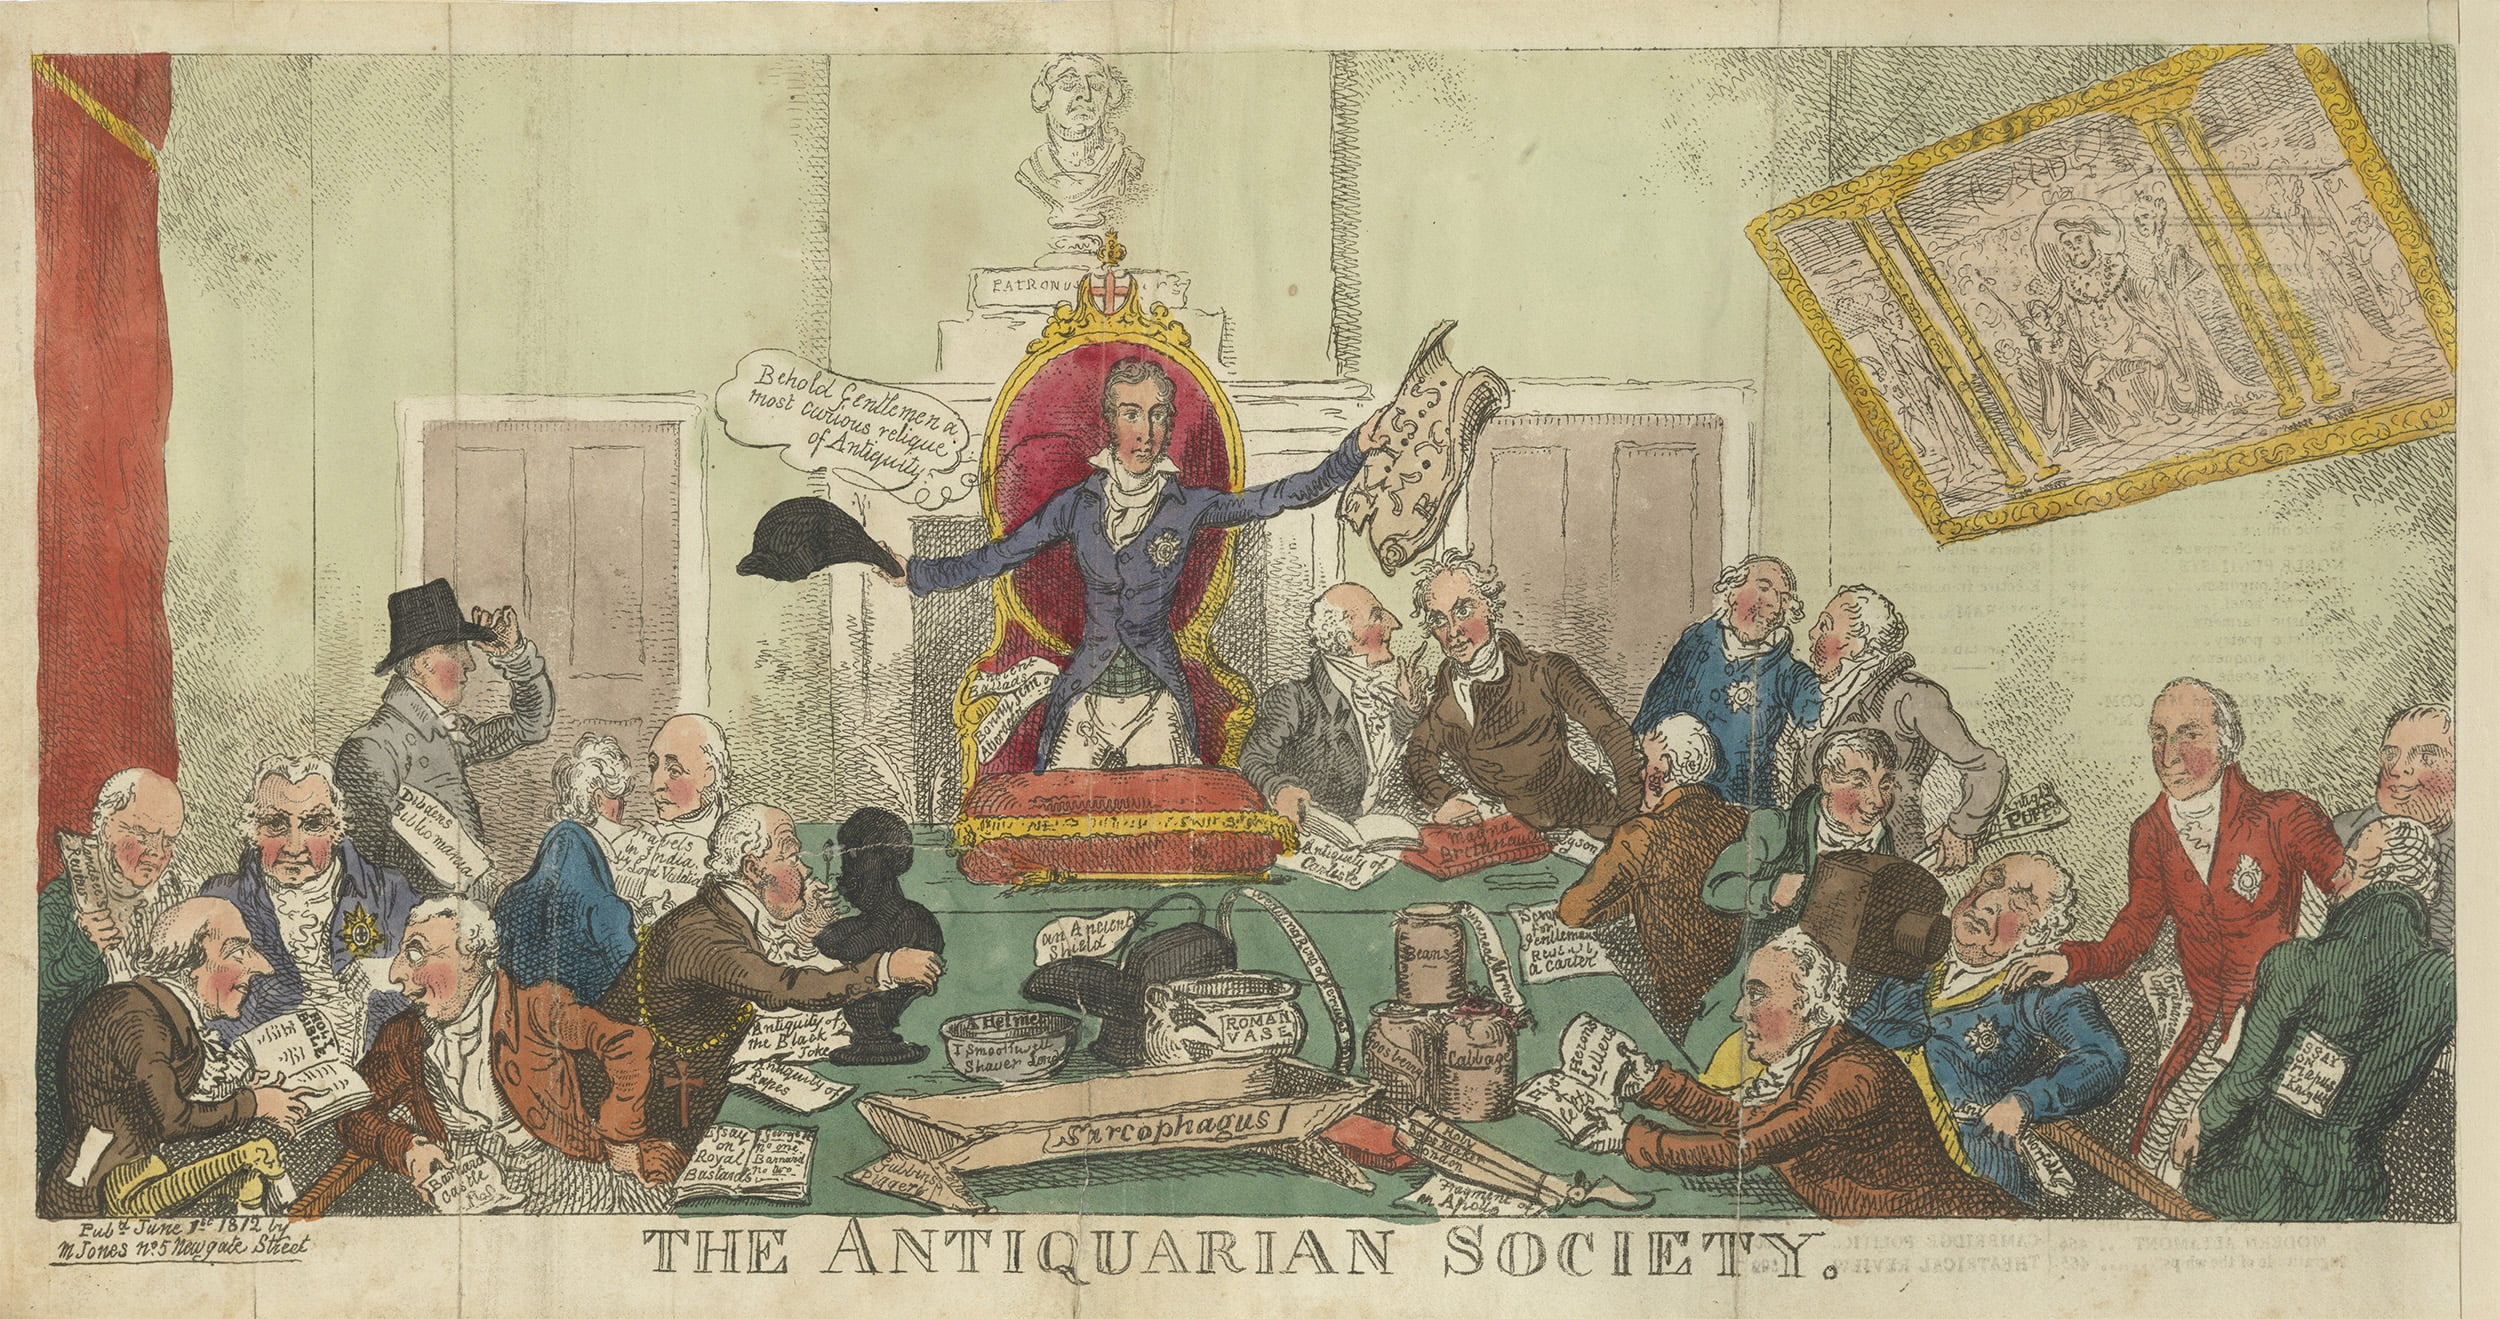 """""""The Antiquarian Society"""" by George Cruikshank (1812) depicts the meeting of a group of London elites brought together over coffee. The group is rowdy, but dressed and composed as intellectuals. (source: The National Trust Collections )"""